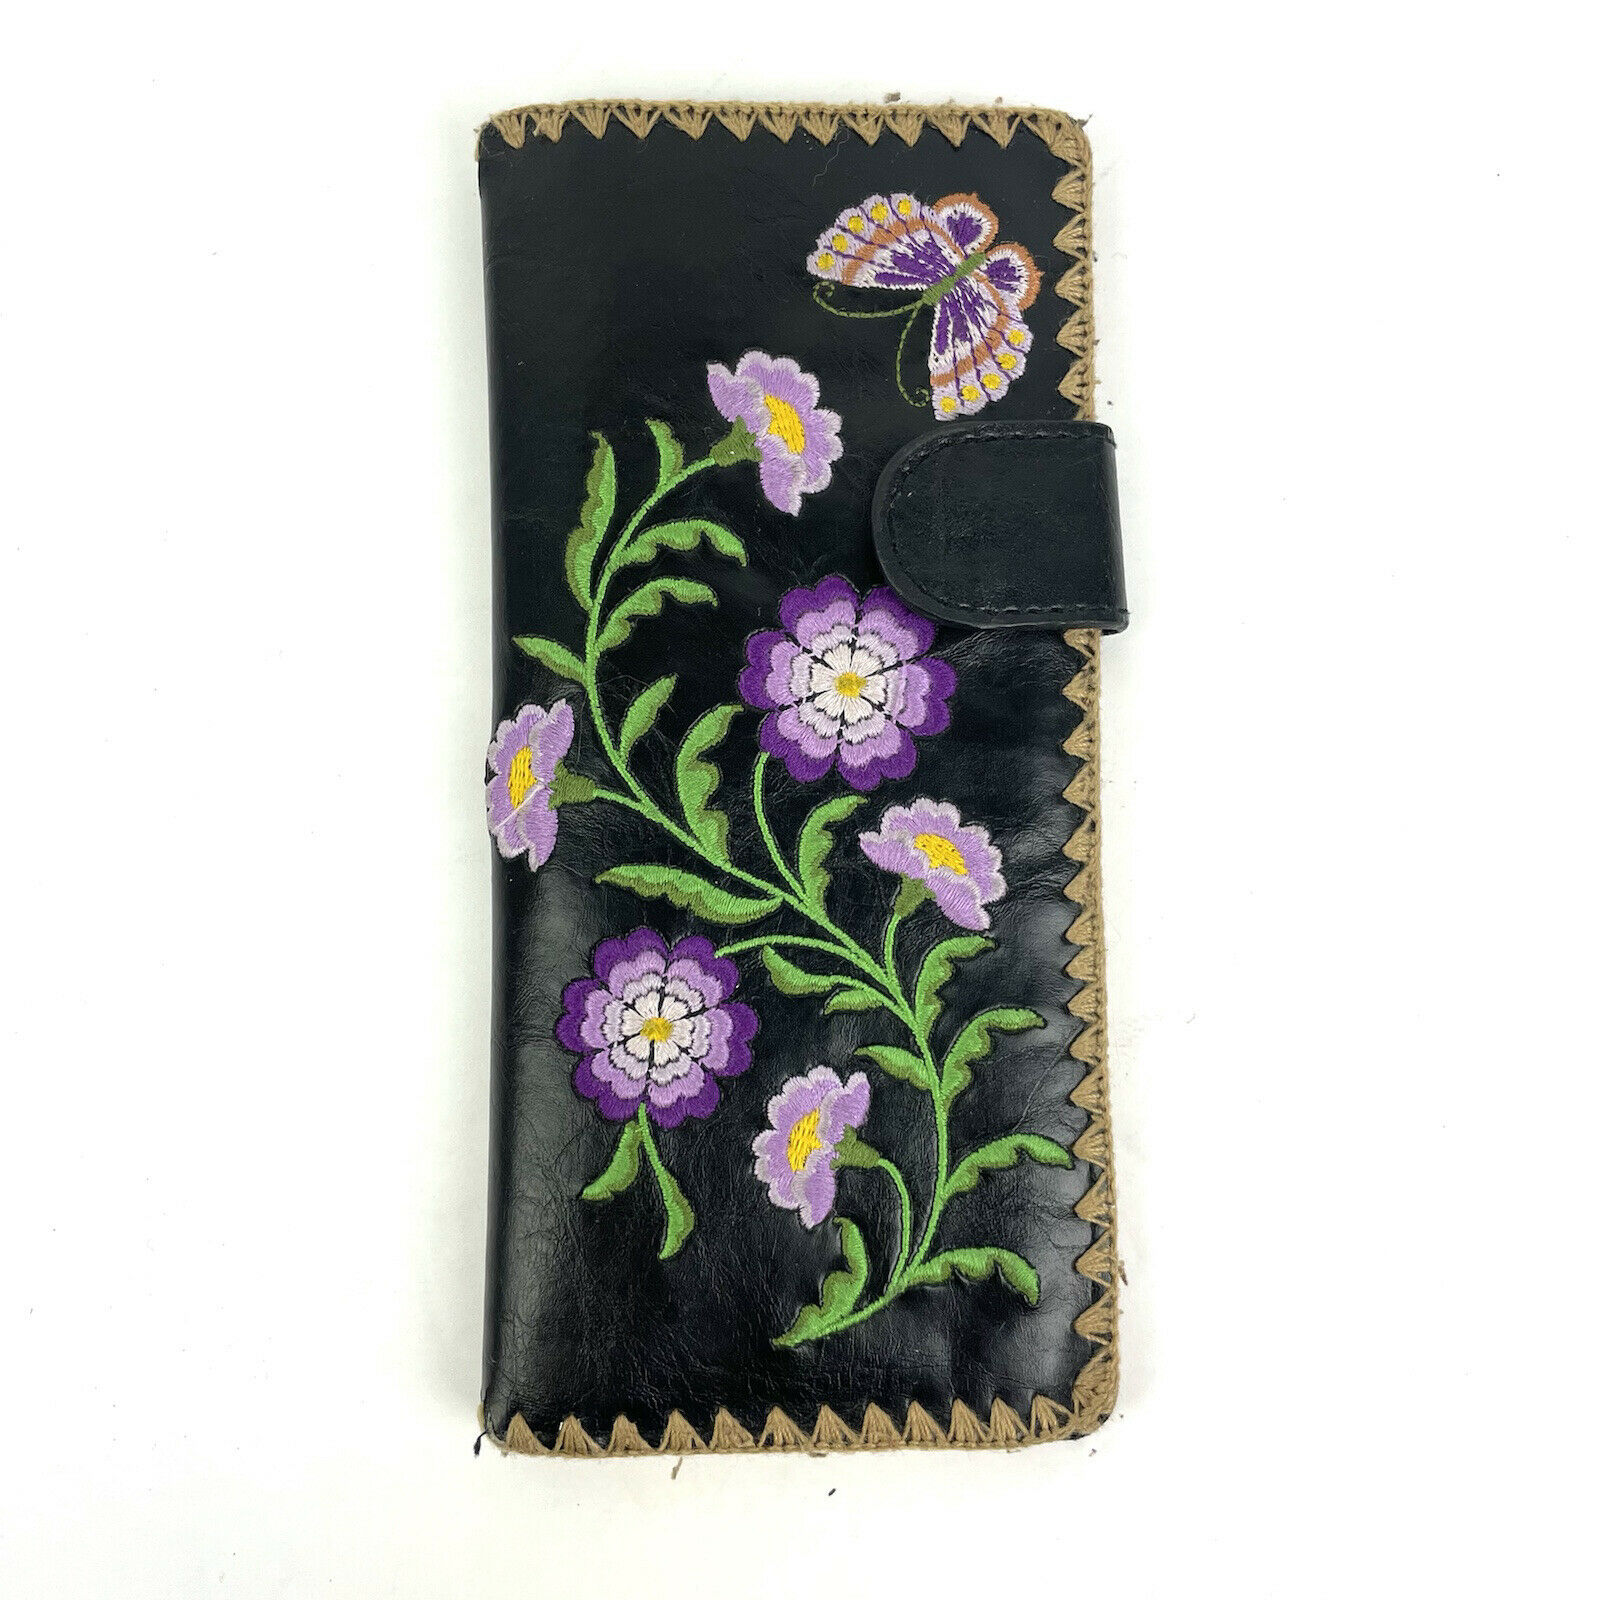 Lavishy Wallet Embroidered Floral Butterfly Black Faux Leather Clutch Organizer